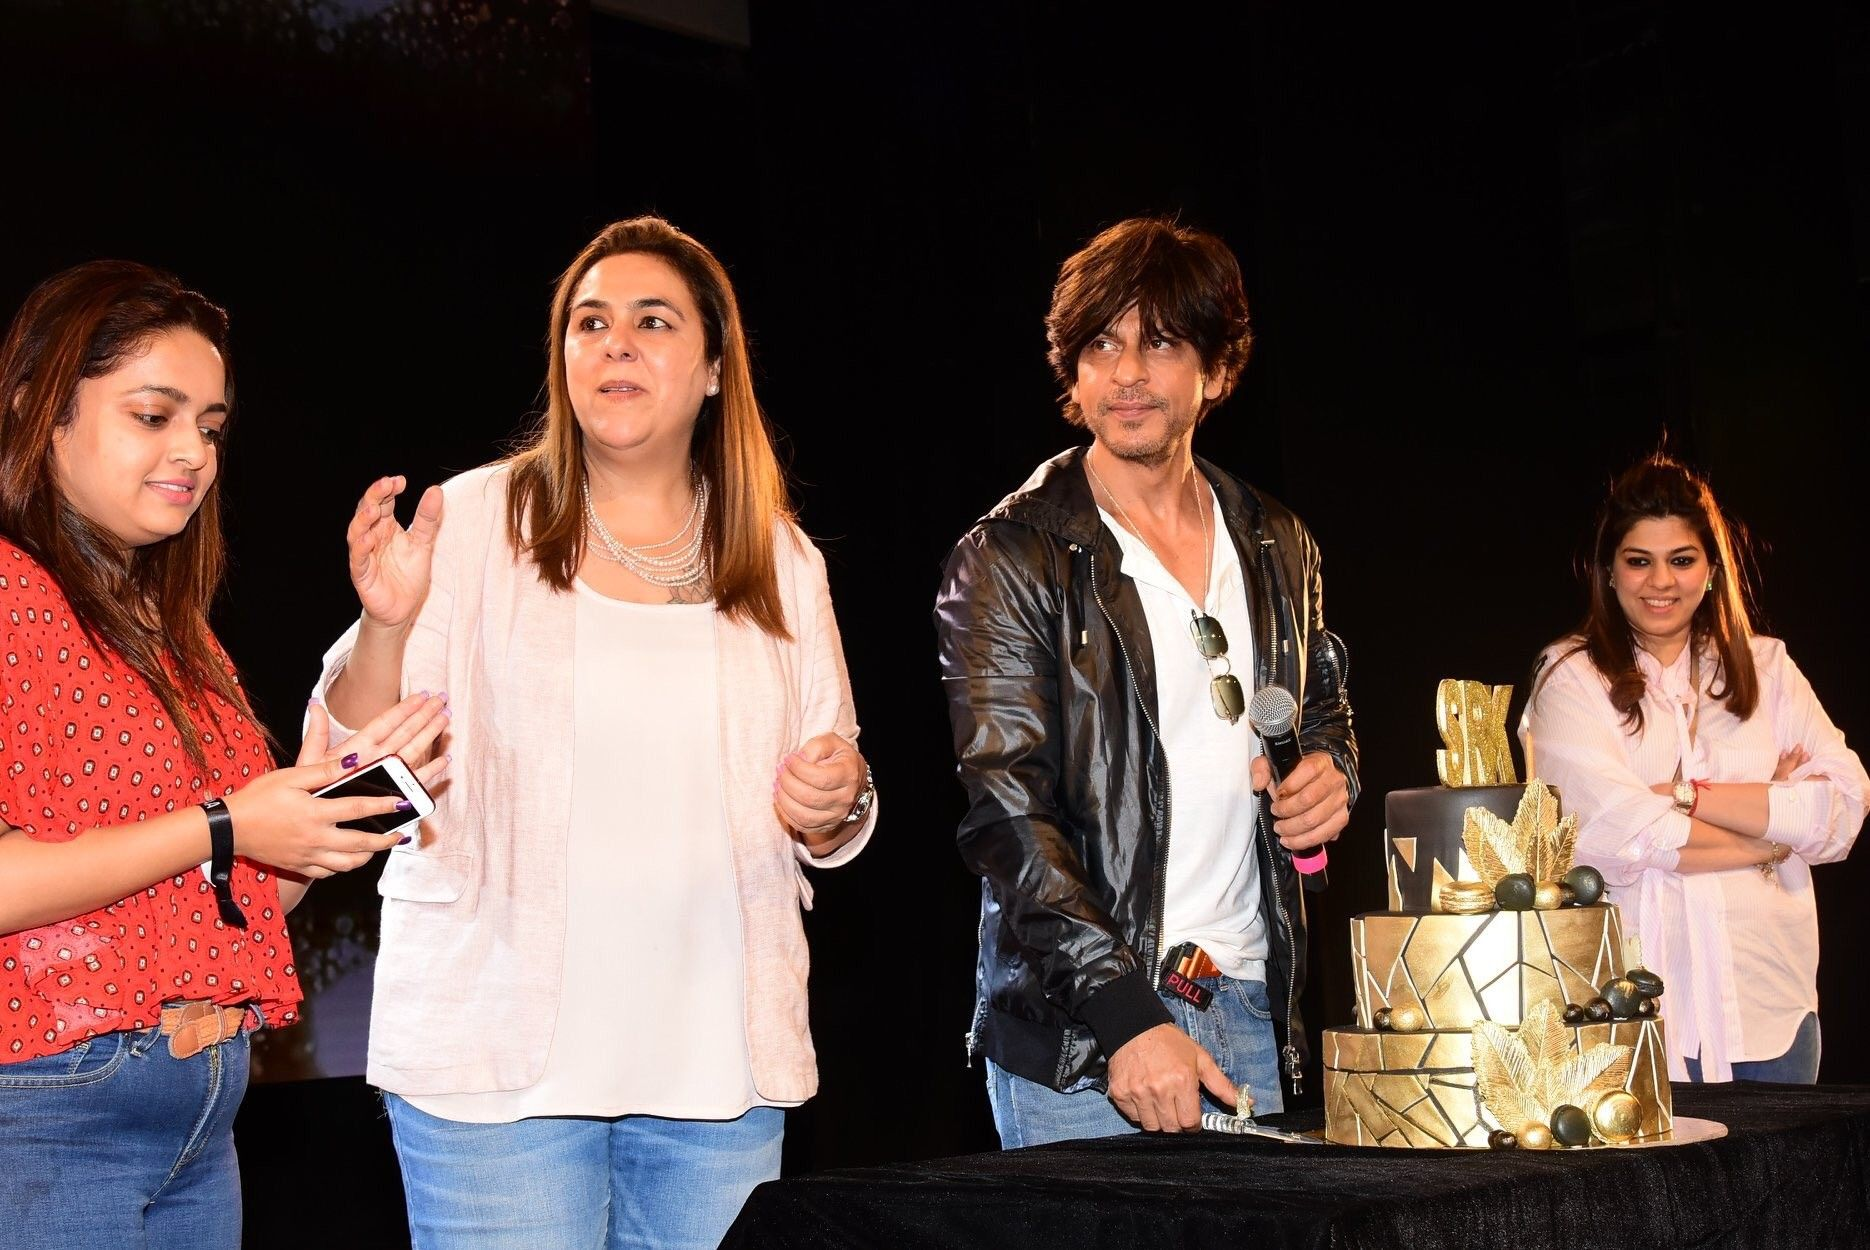 Dt 02.11.2019 SRK celebrating his 54th Birthday with fans